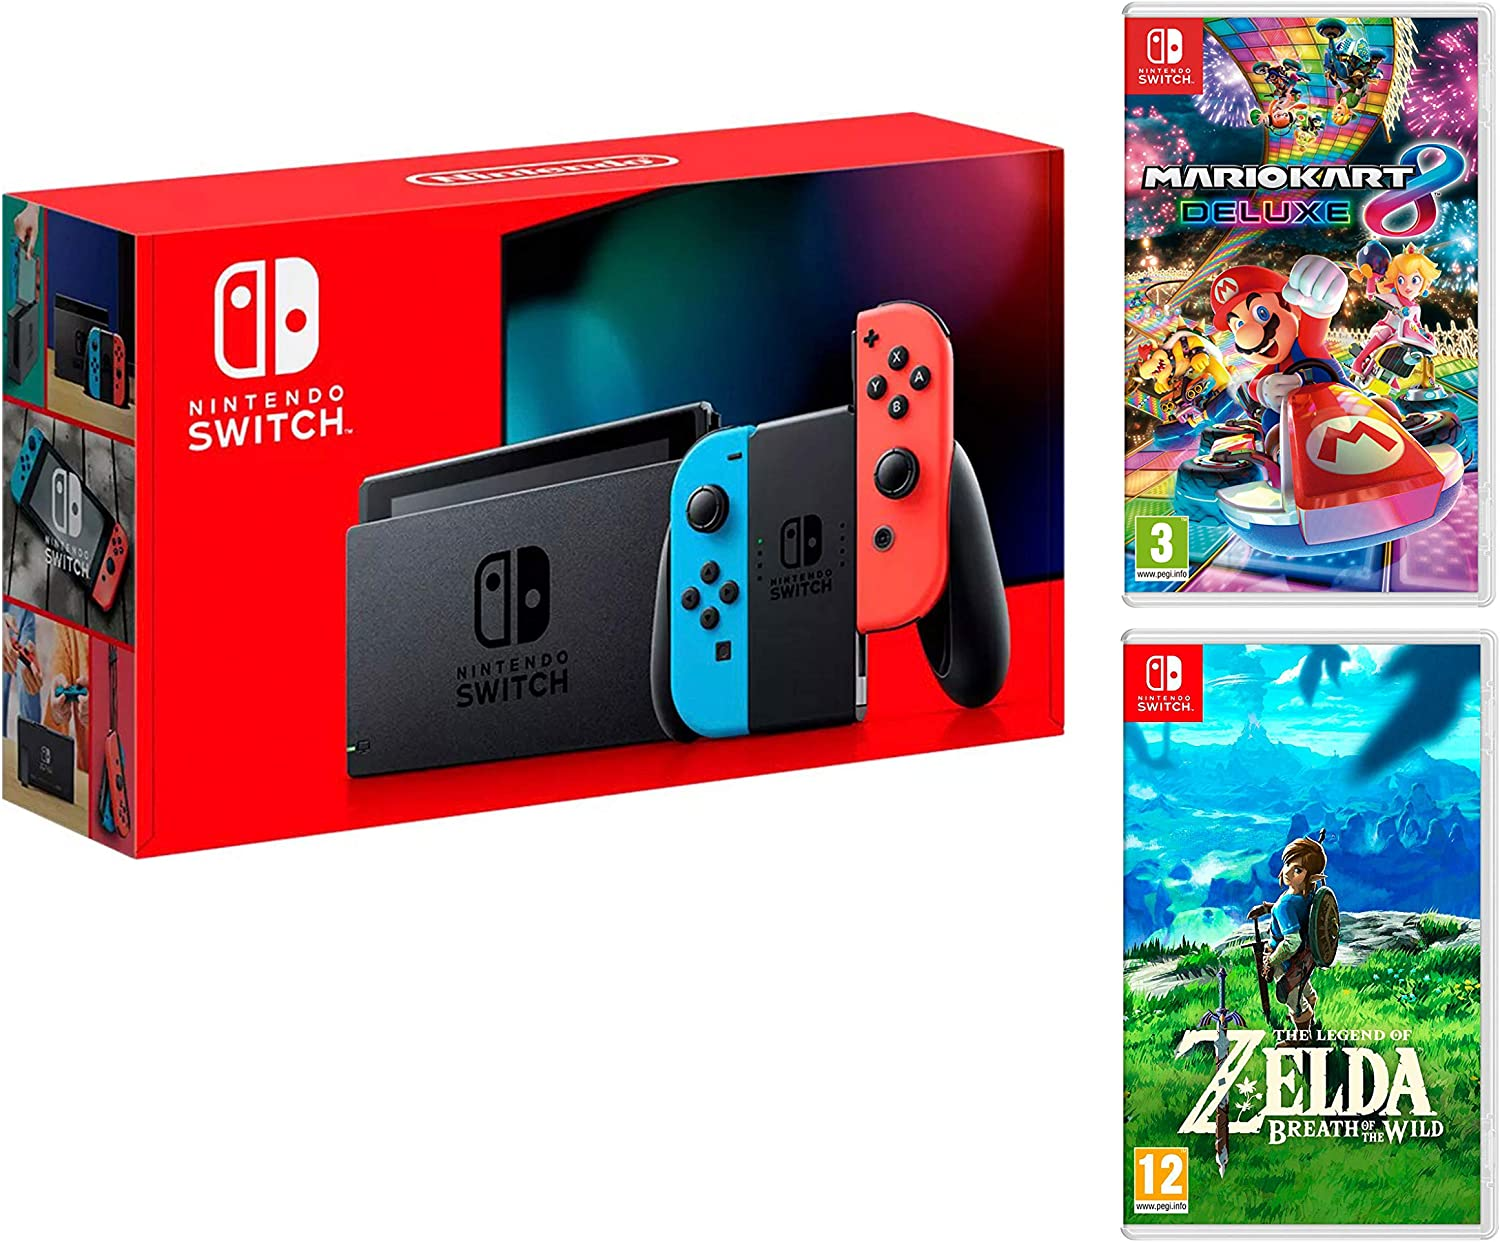 Nintendo Switch Consola 32Gb Azul/Rojo Neón + Mario Kart 8 Deluxe + Zelda: Breath of The Wild: Amazon.es: Videojuegos